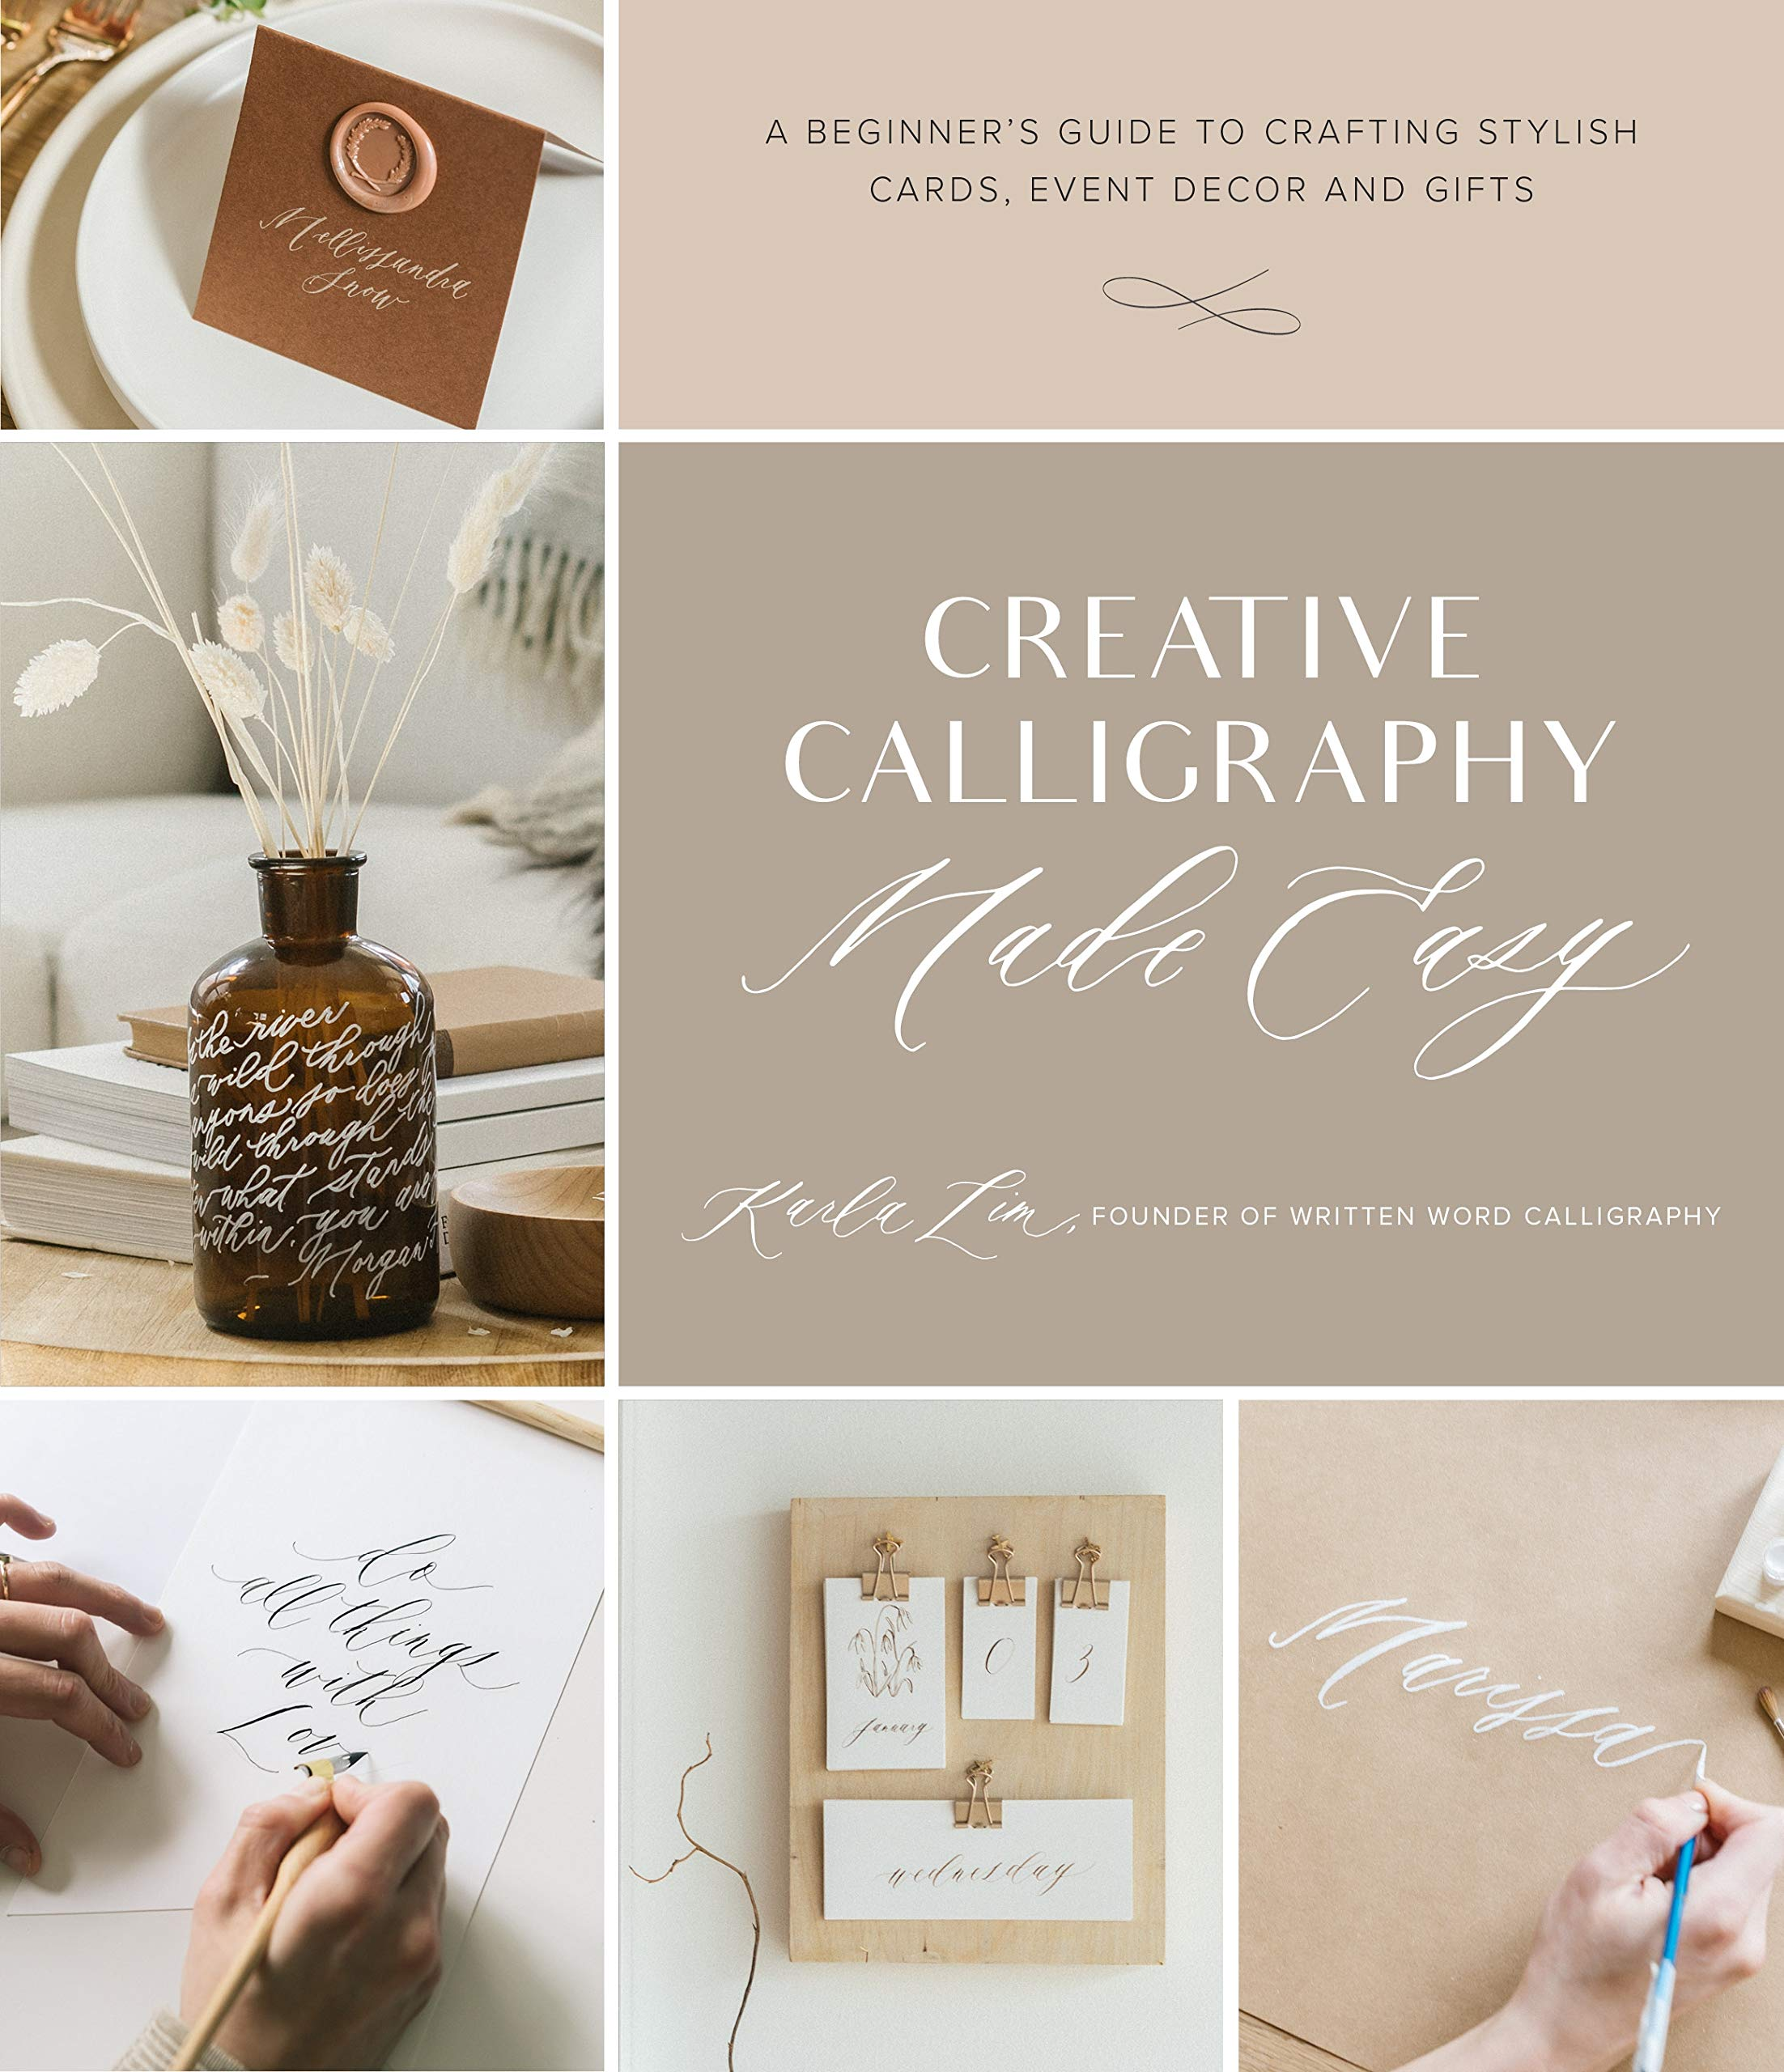 Creative Calligraphy Made Easy: A Beginner's Guide to Crafting Stylish Cards, Event Decor and Gifts